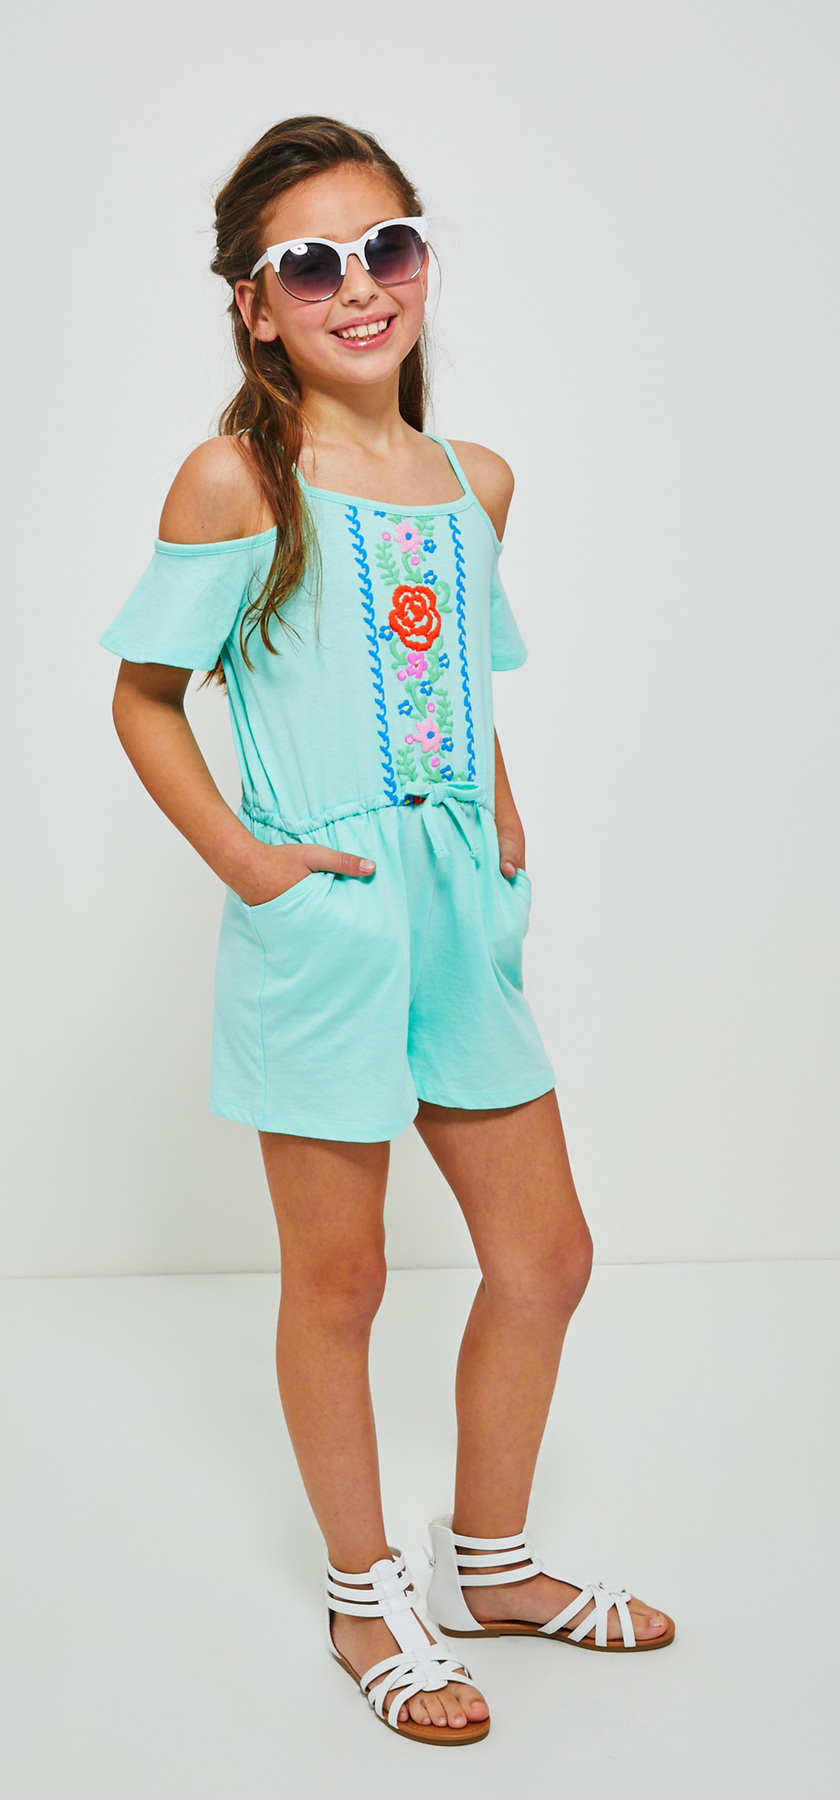 87d85401bb8 Cold Shoulder Floral Print Romper Sunglasses Outfit - FabKids